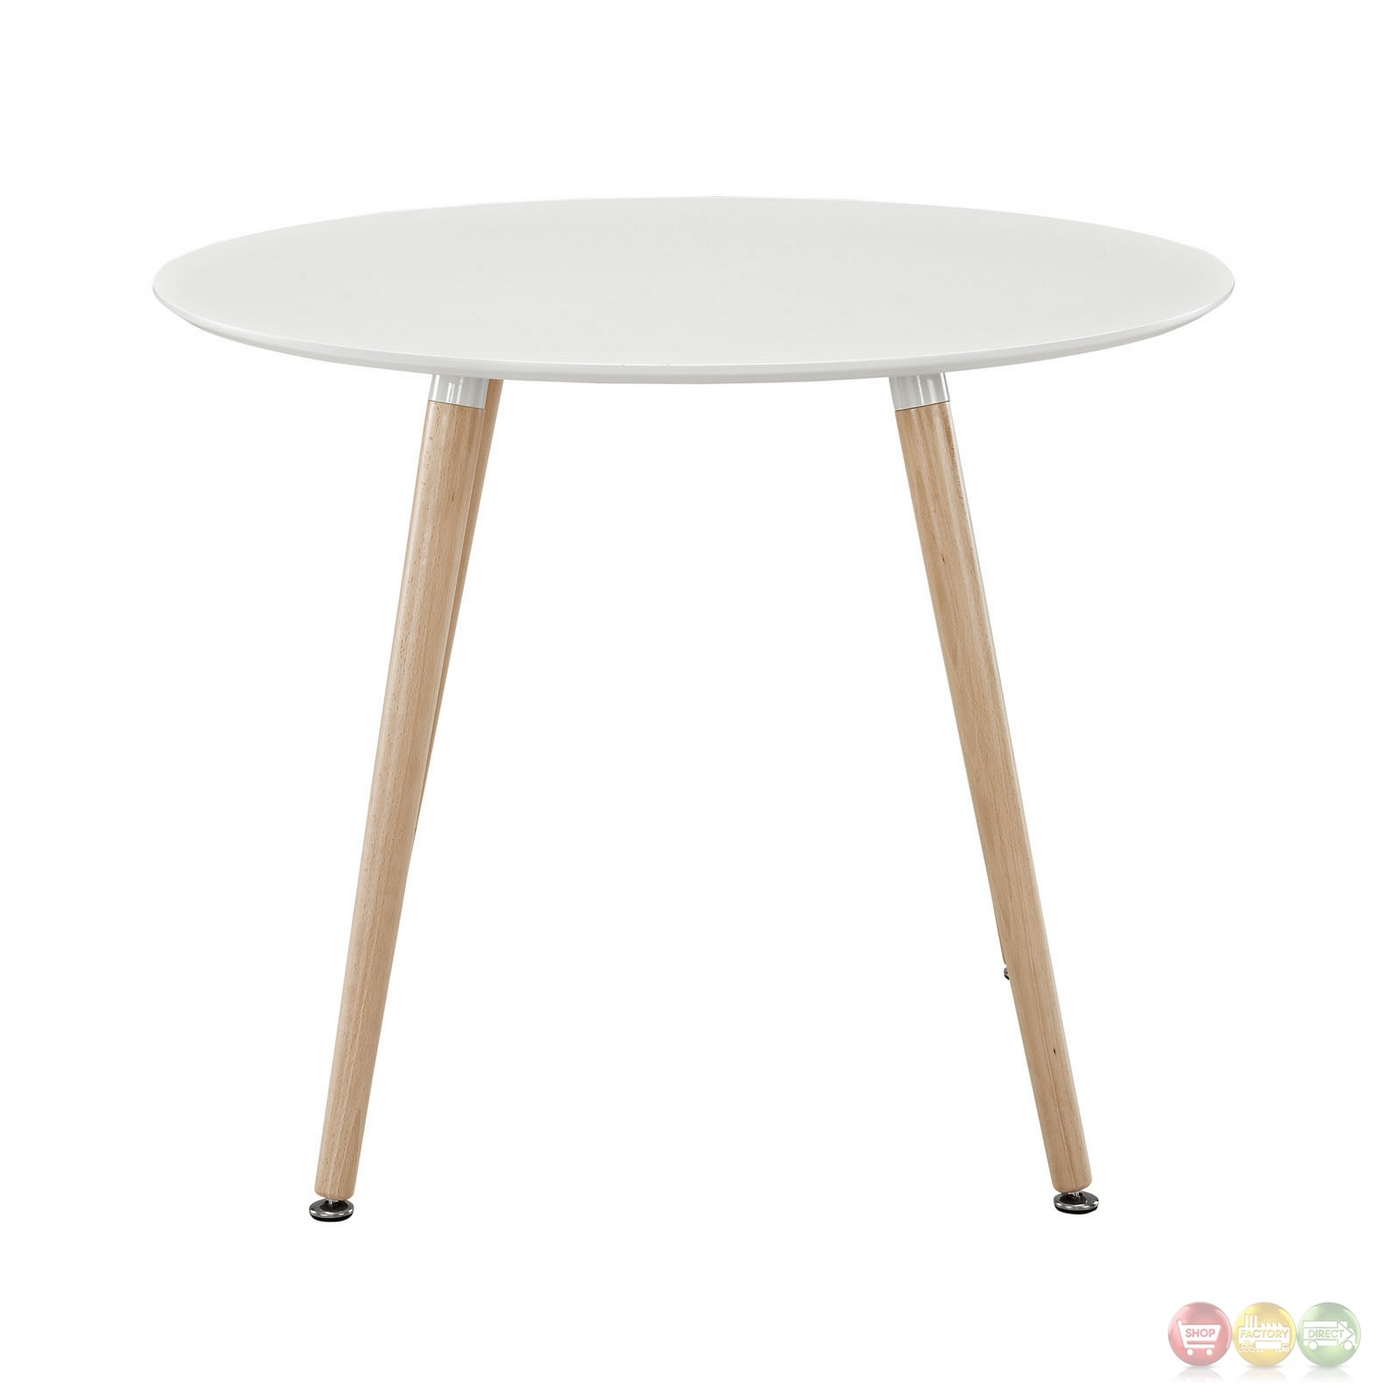 Track contemporary 40 round wooden dining table white for Circular dining table